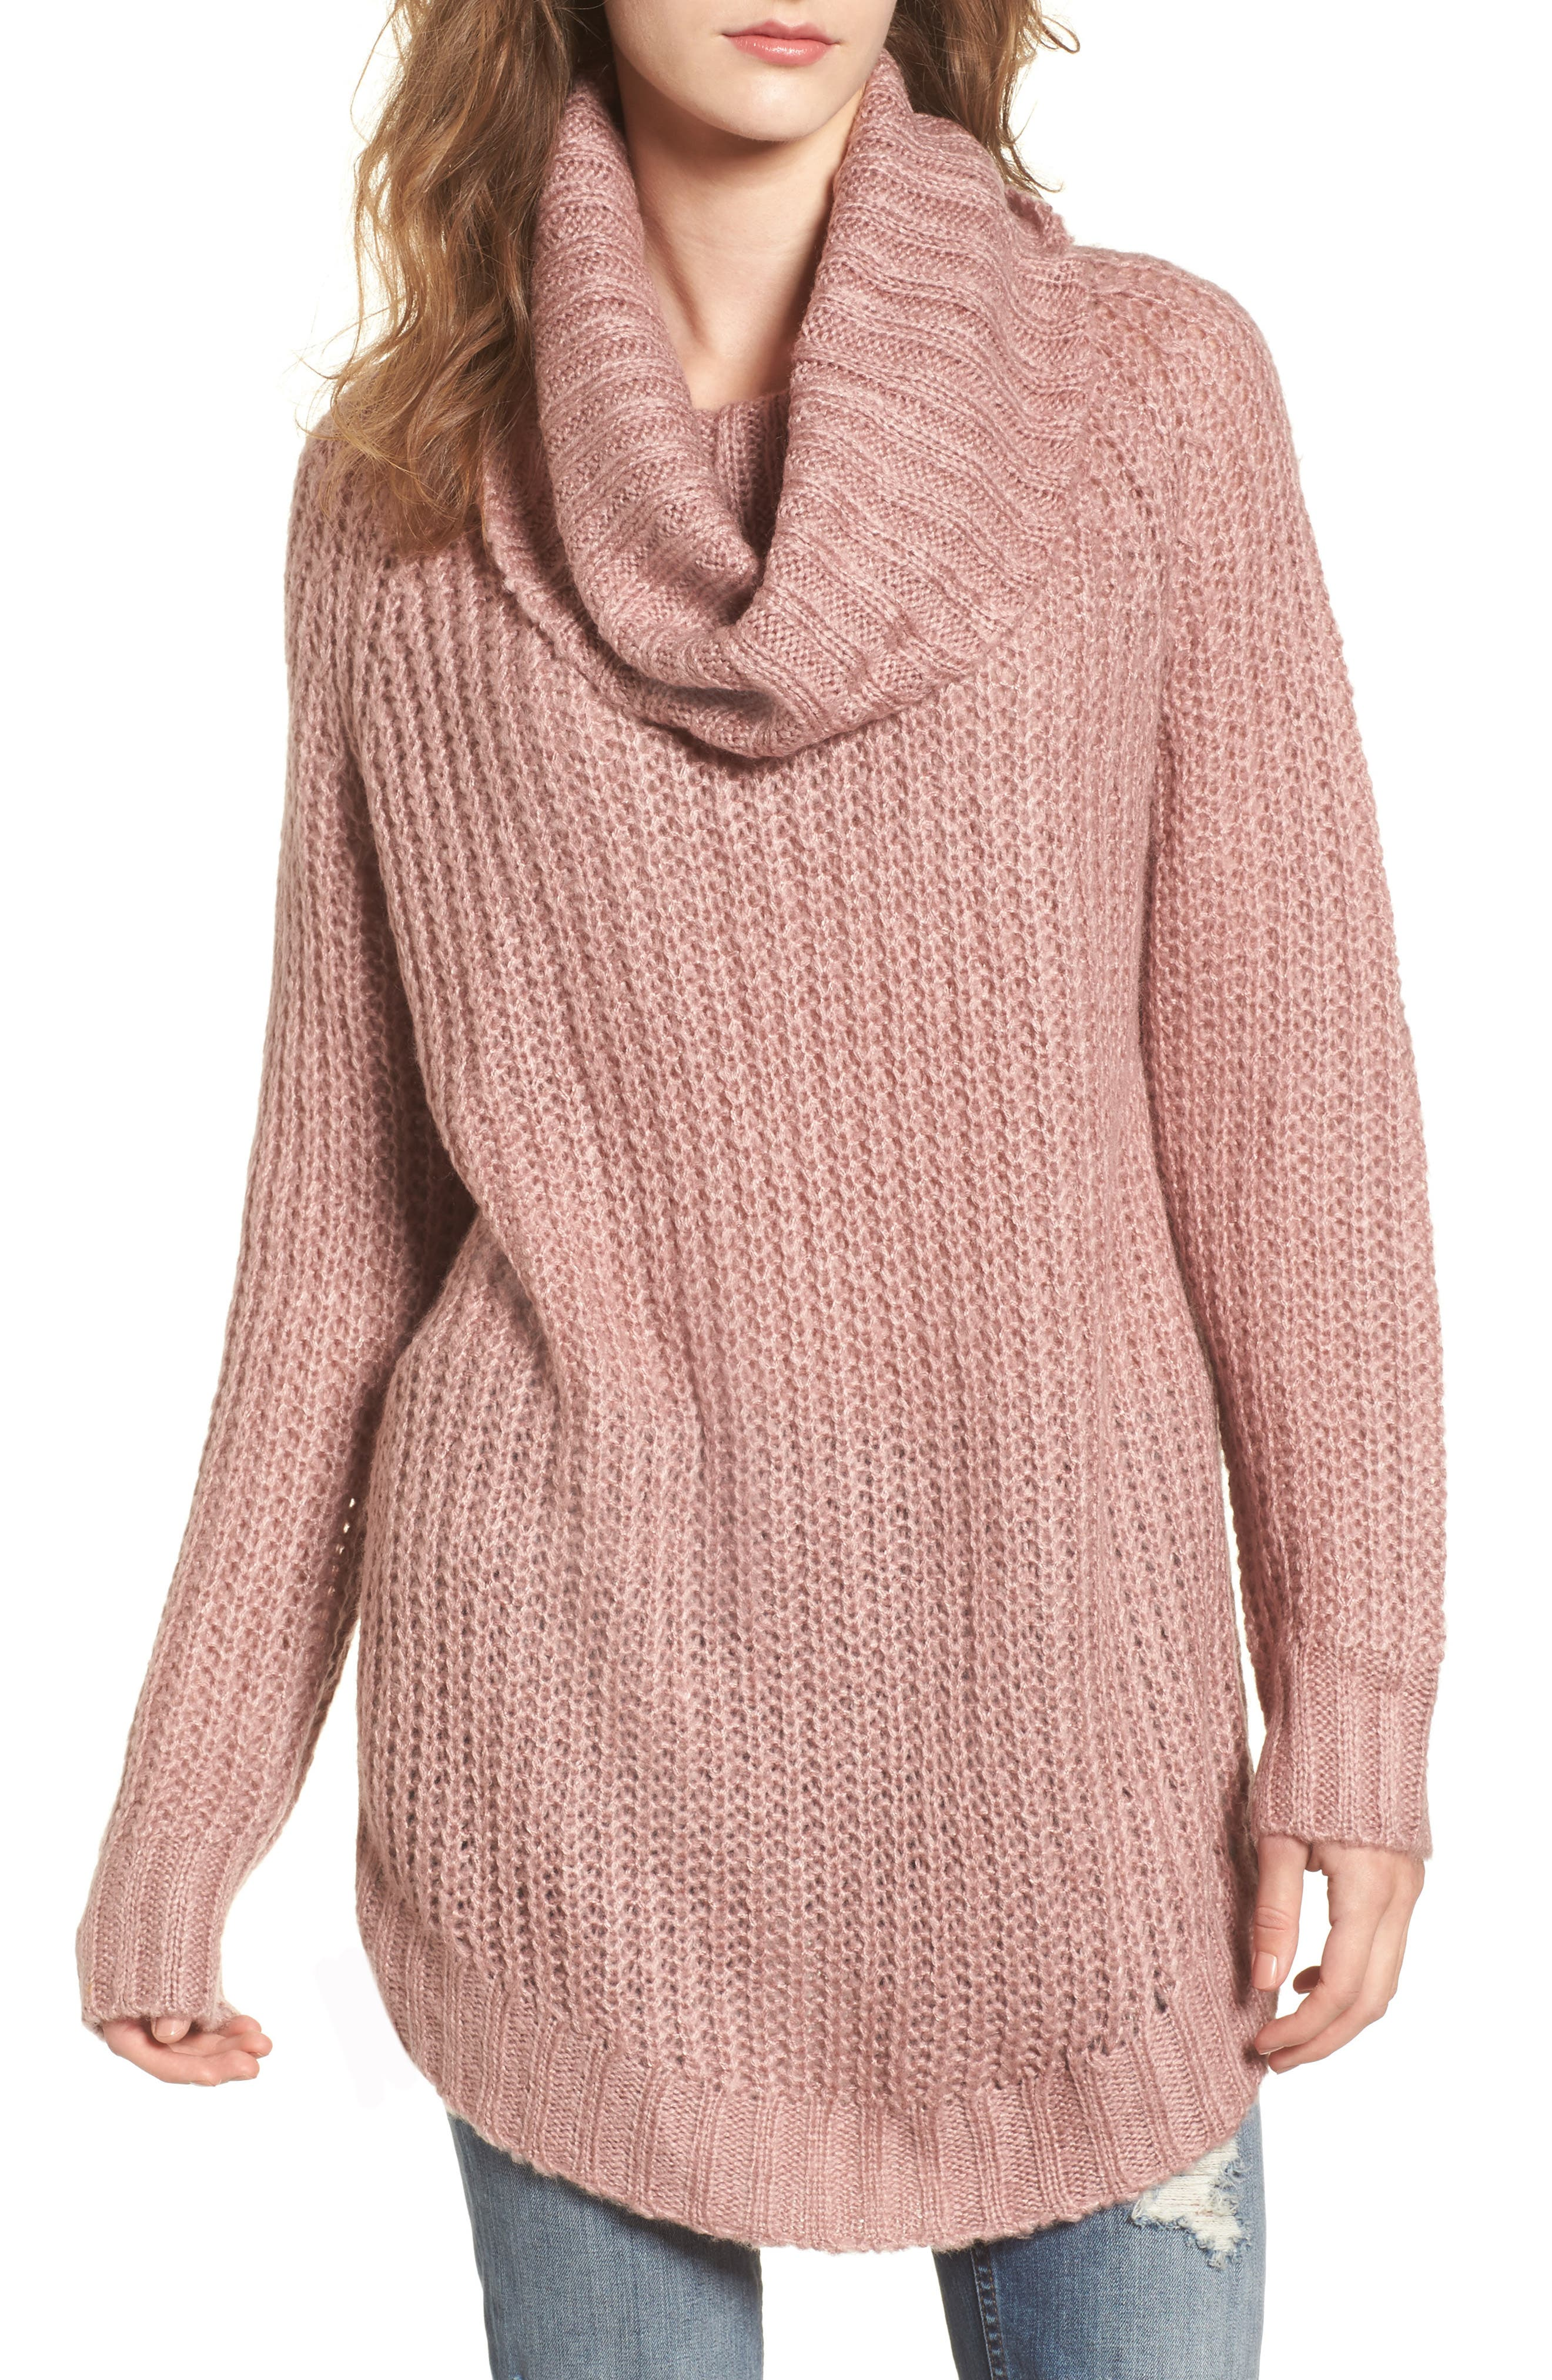 DREAMERS BY DEBUT Cowl Neck Sweater, Main, color, 680